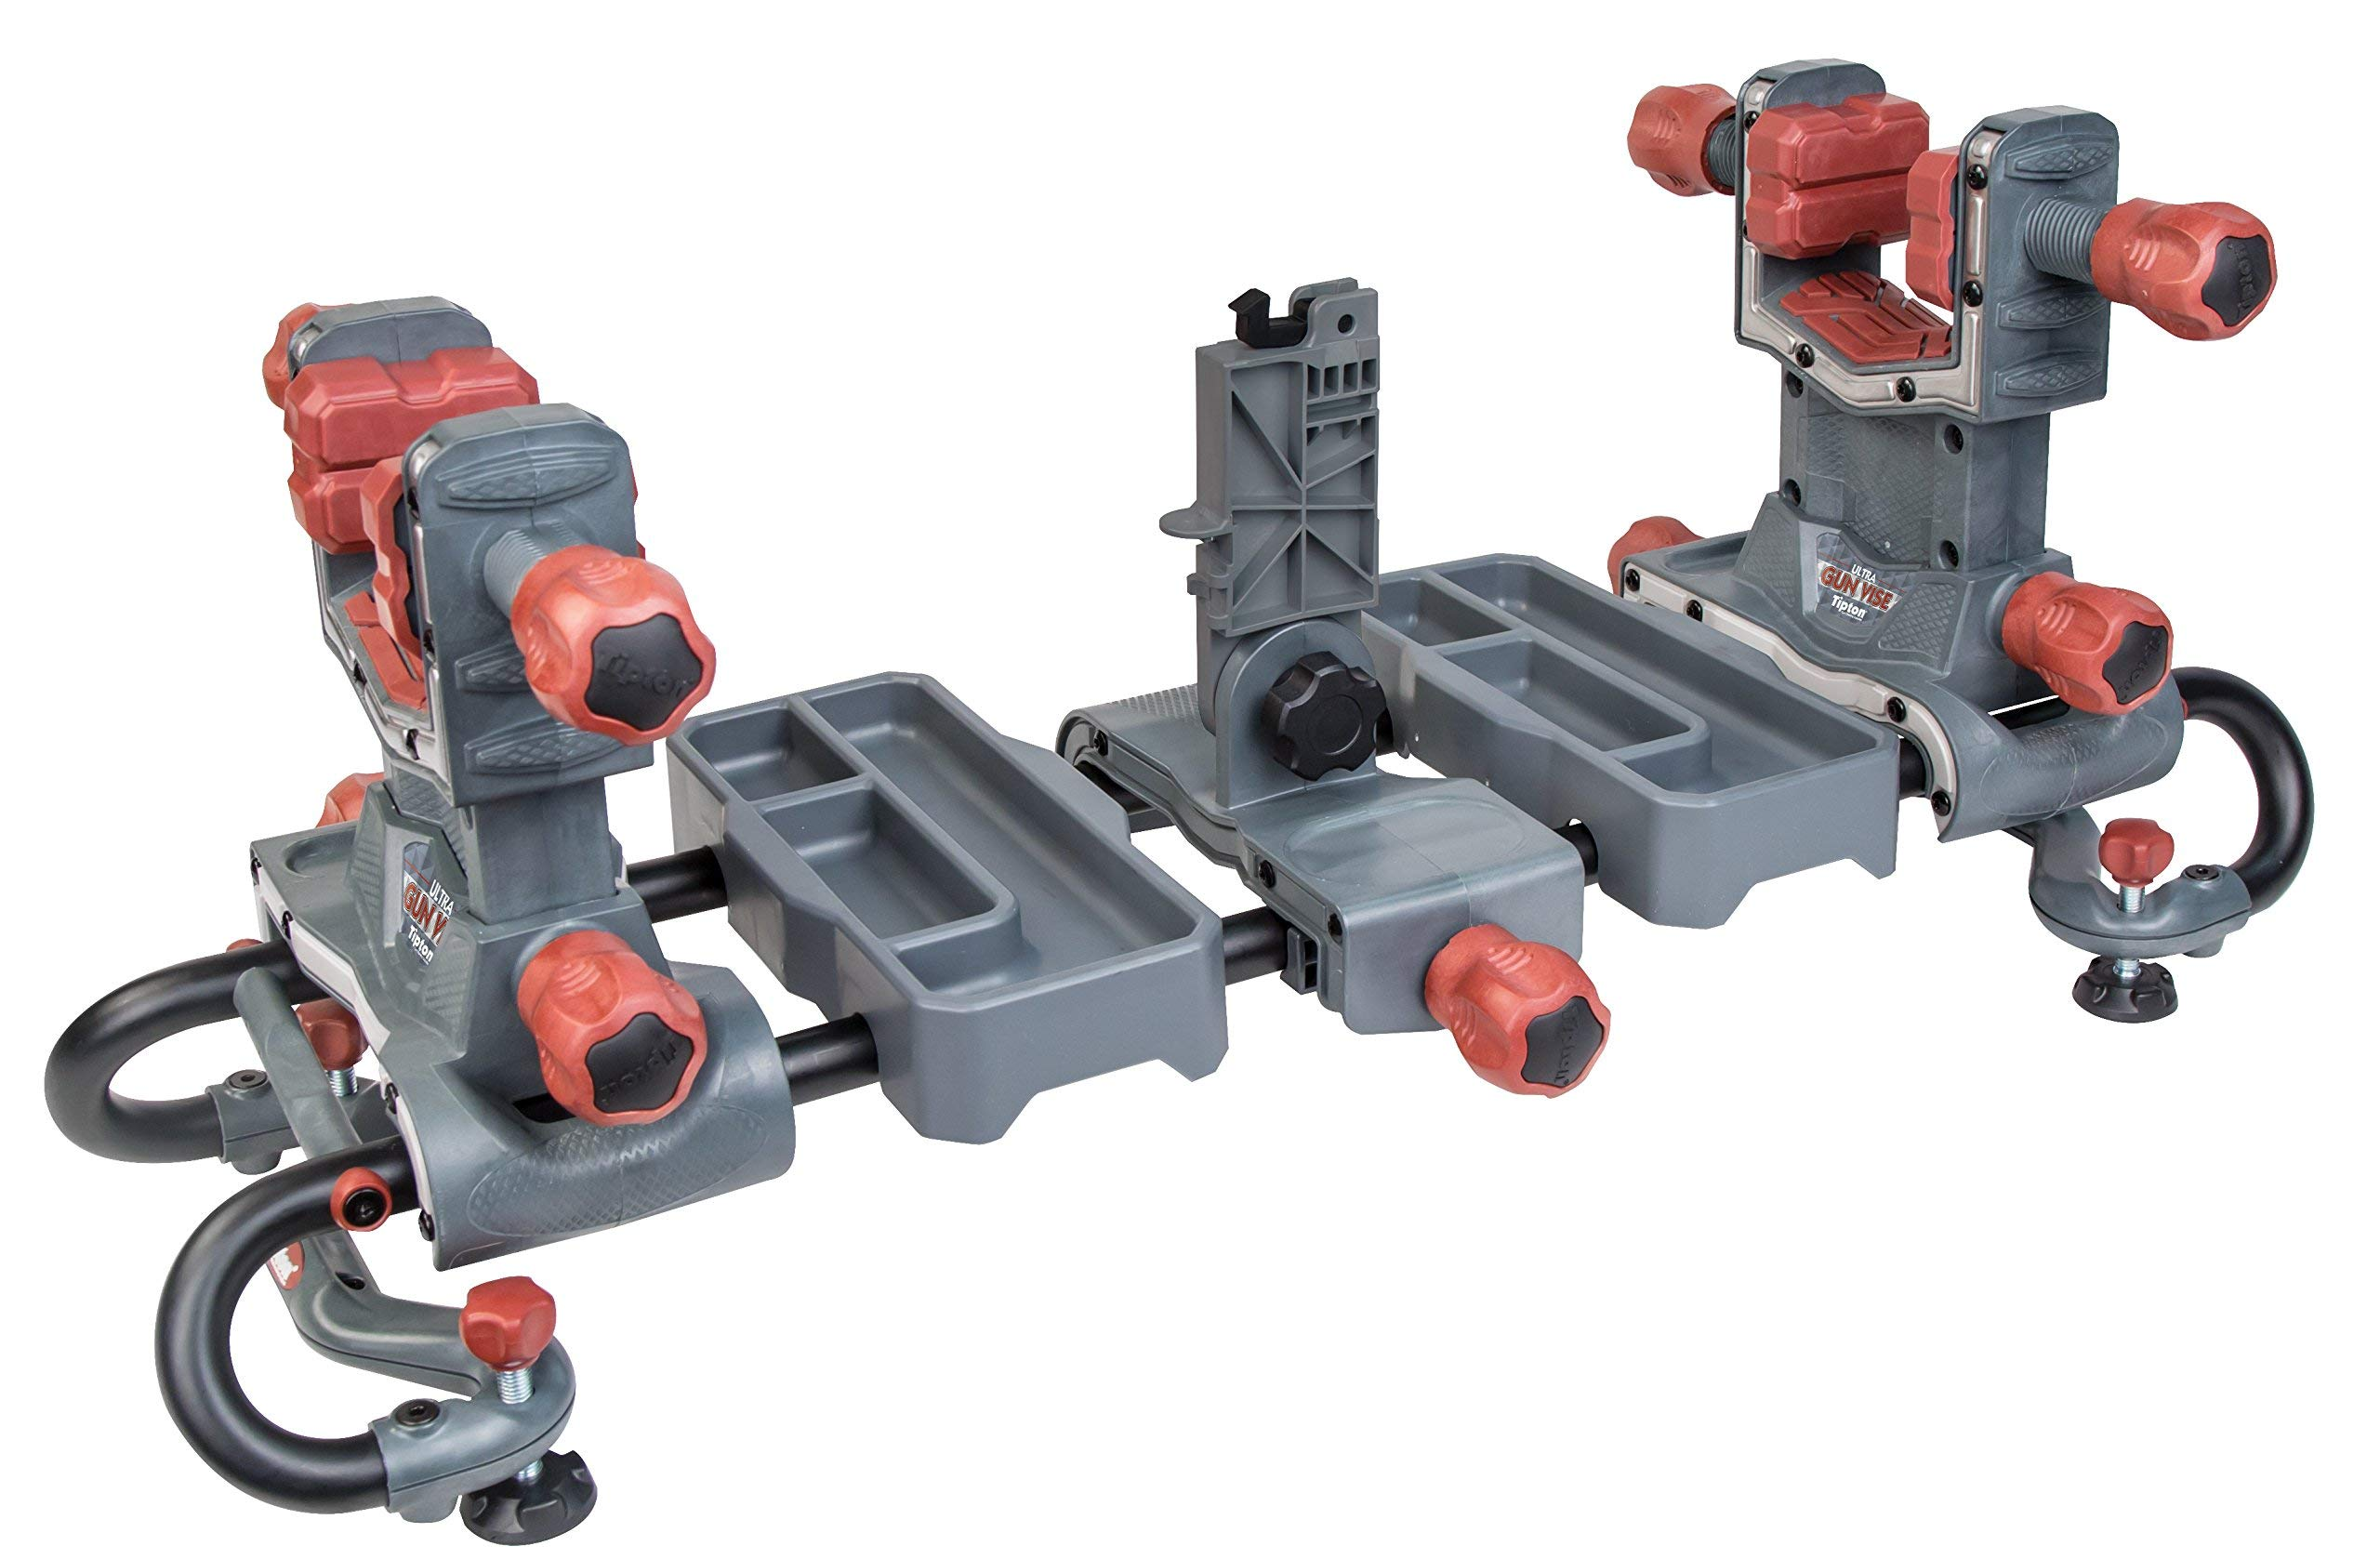 Tipton Ultra Gun Vise with Heavy-Duty Construction, Customizable Design and Non-Marring Materials for Cleaning, Gunsmithing and Maintenance (Renewed)